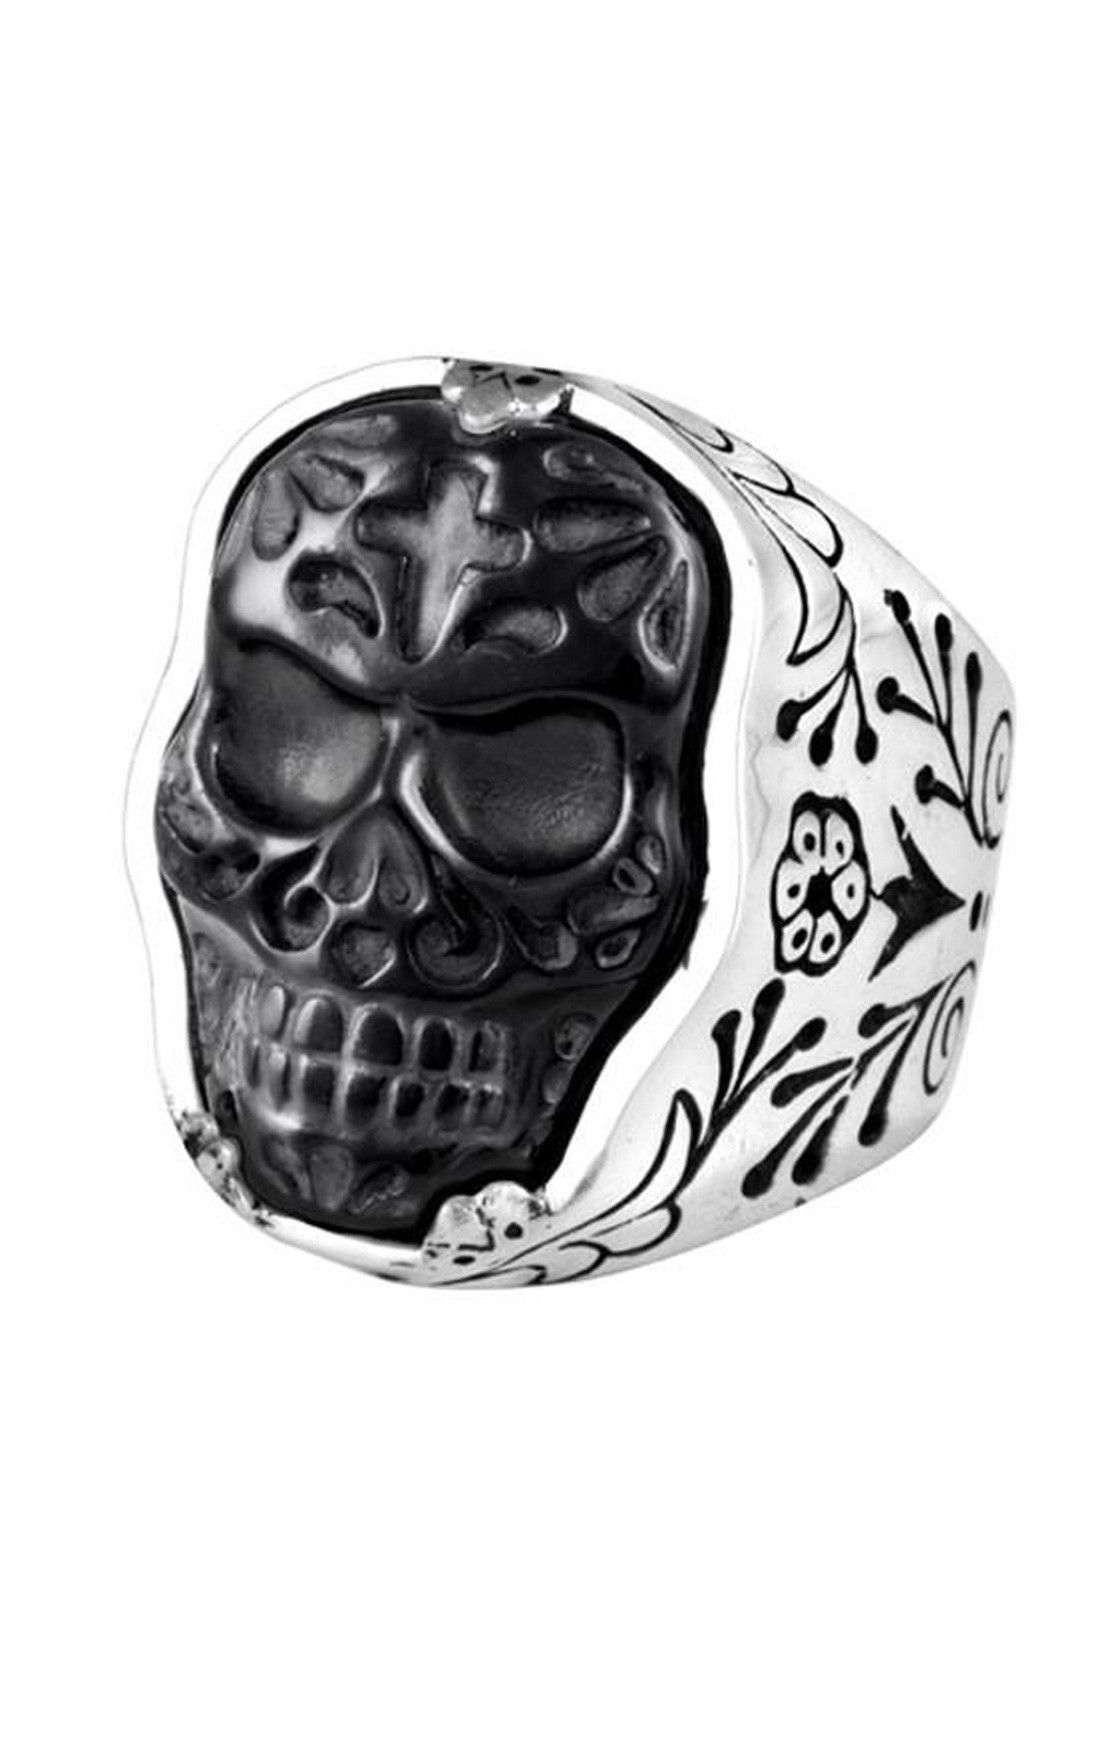 King Baby - Small Carved Jet Muerte Skull Ring (K20-5676)